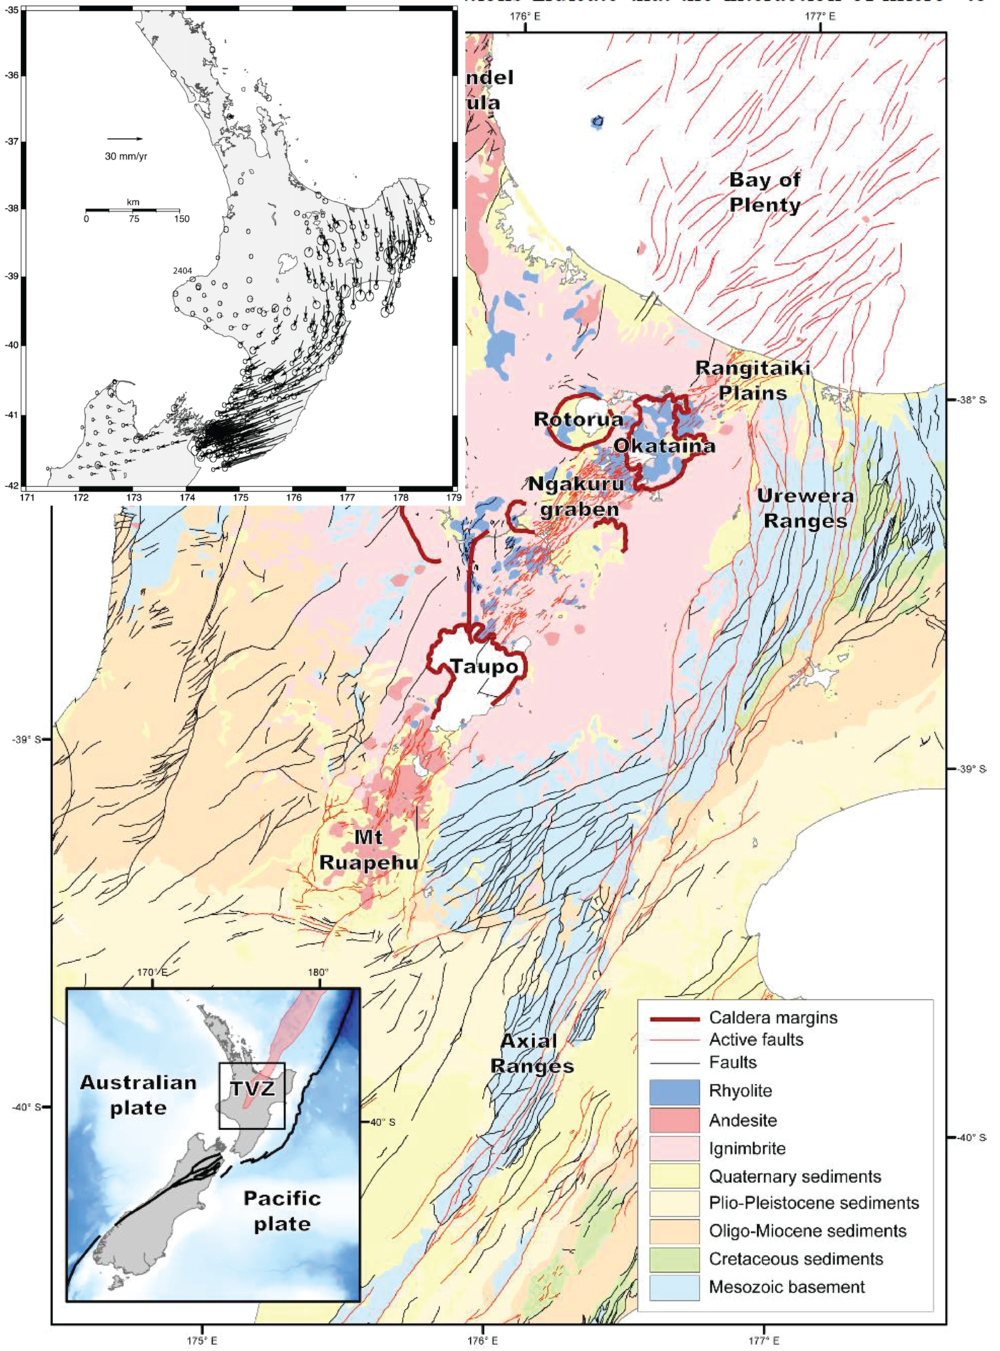 Geologic map of the North Island, including the volcanoes and calderas of the Taupo Volcanic Zone, and extensional faults of the overlapping Taupo Rift (Villamor et al., 2017). Upper left inset shows crustal velocities of the Pacific Plate relative to the Australian plate (Wallace et al., 2004). Note the clockwise rotation of the forearc, resulting in extension at the Taupo Rift, and transpression towards the south.